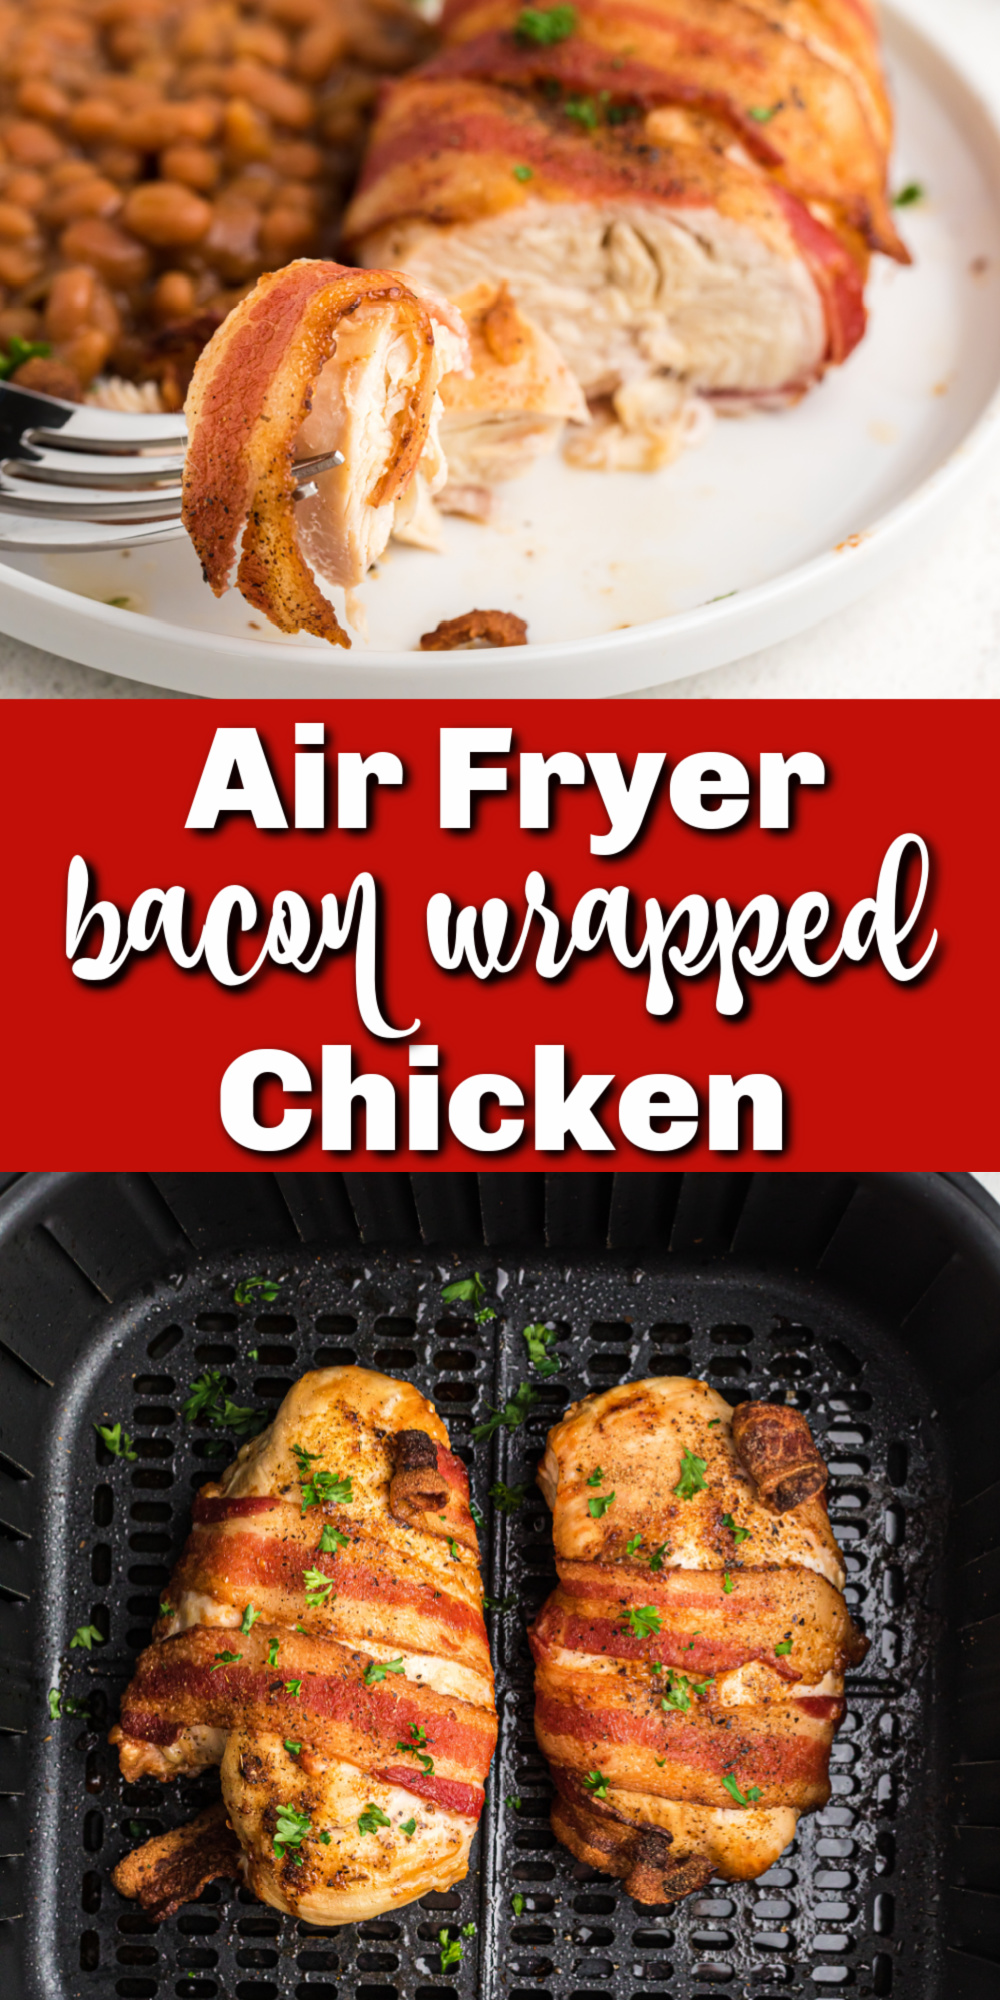 Air Fryer Bacon Wrapped Chicken is a juicy, tender chicken dish made with only 5 ingredients. You'll love how quick and easy this dish is to make, and your friends and family will love the flavors! It's an easy air fryer recipe that everyone loves.